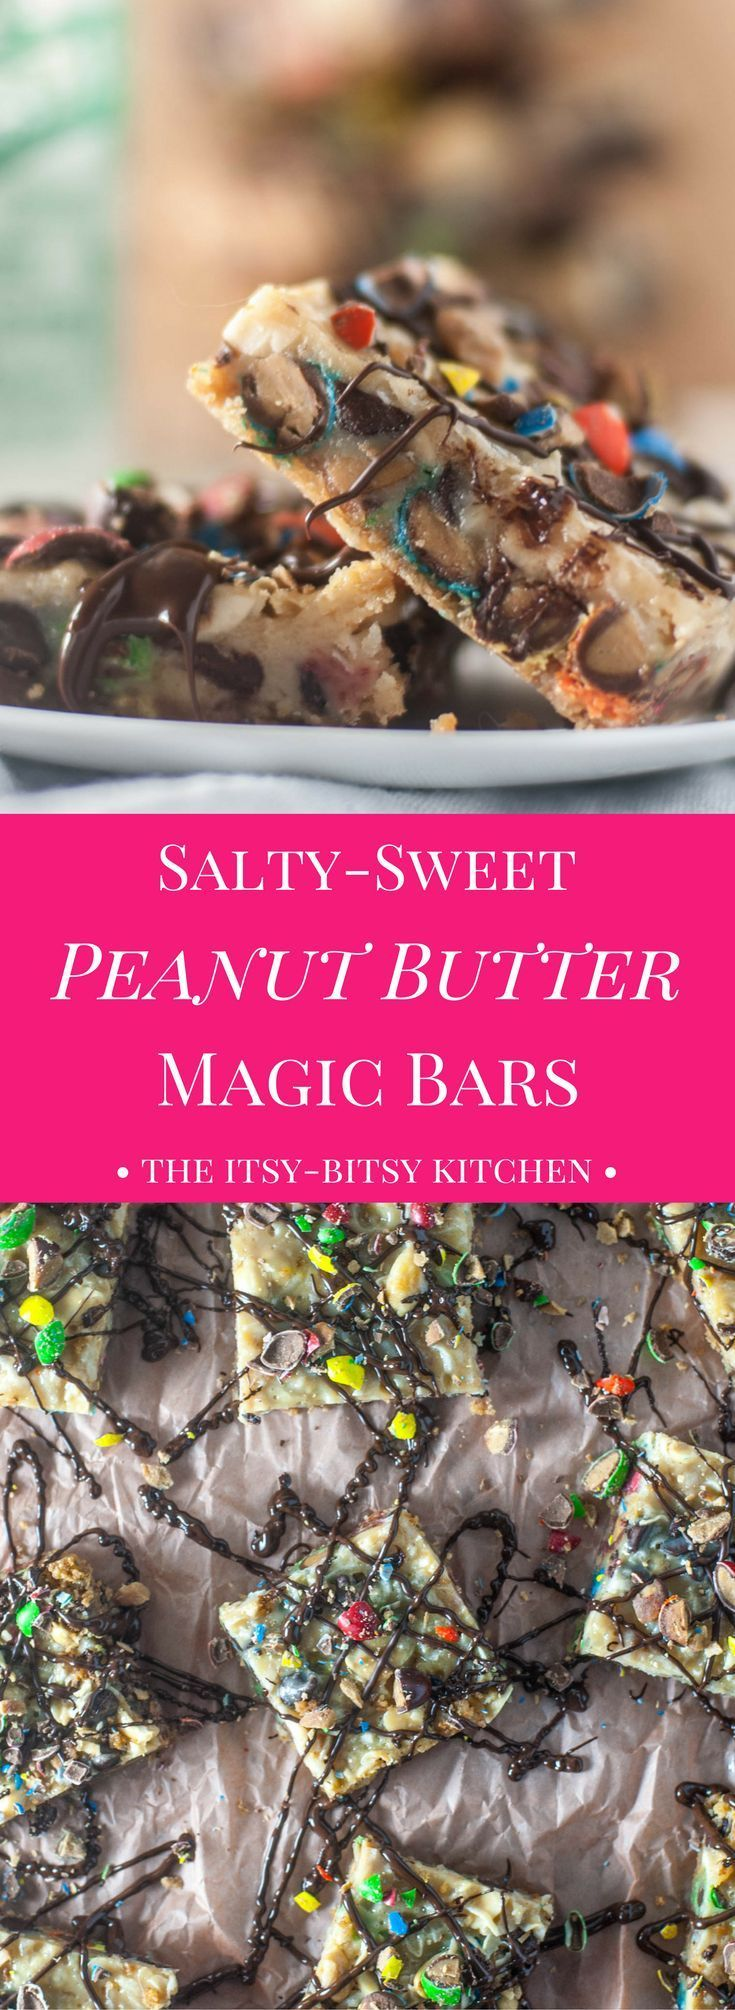 Packed with M&Ms and potato chips, these salty-sweet peanut butter magic bars are a delicious twist on the classic bar cookie!